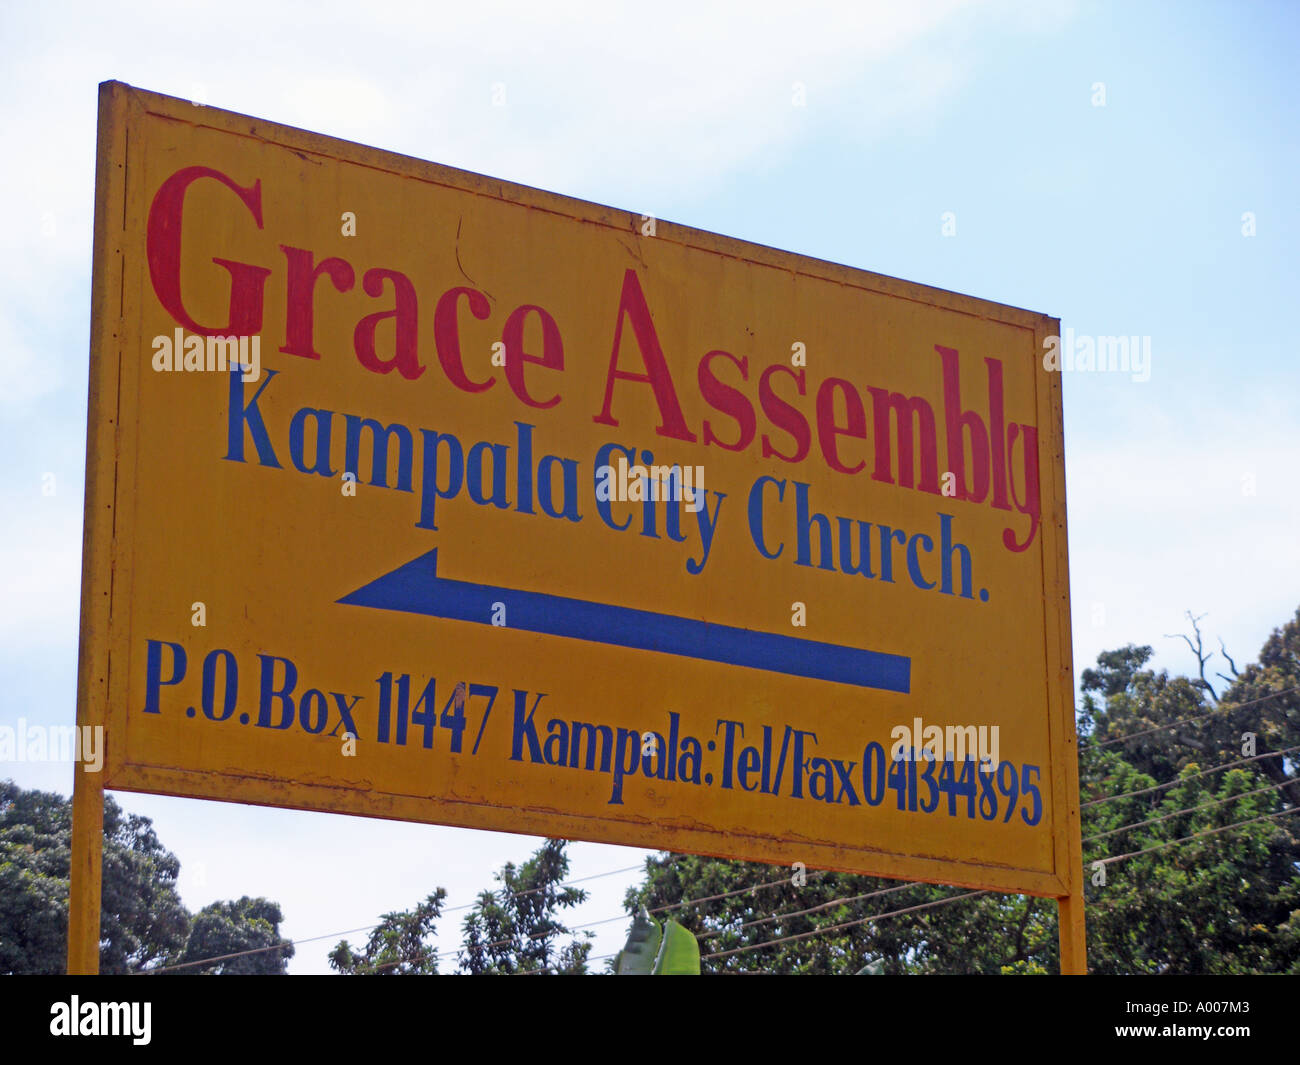 Signboard for Grace Assembly pentecostal church, Kampala, Uganda - Stock Image